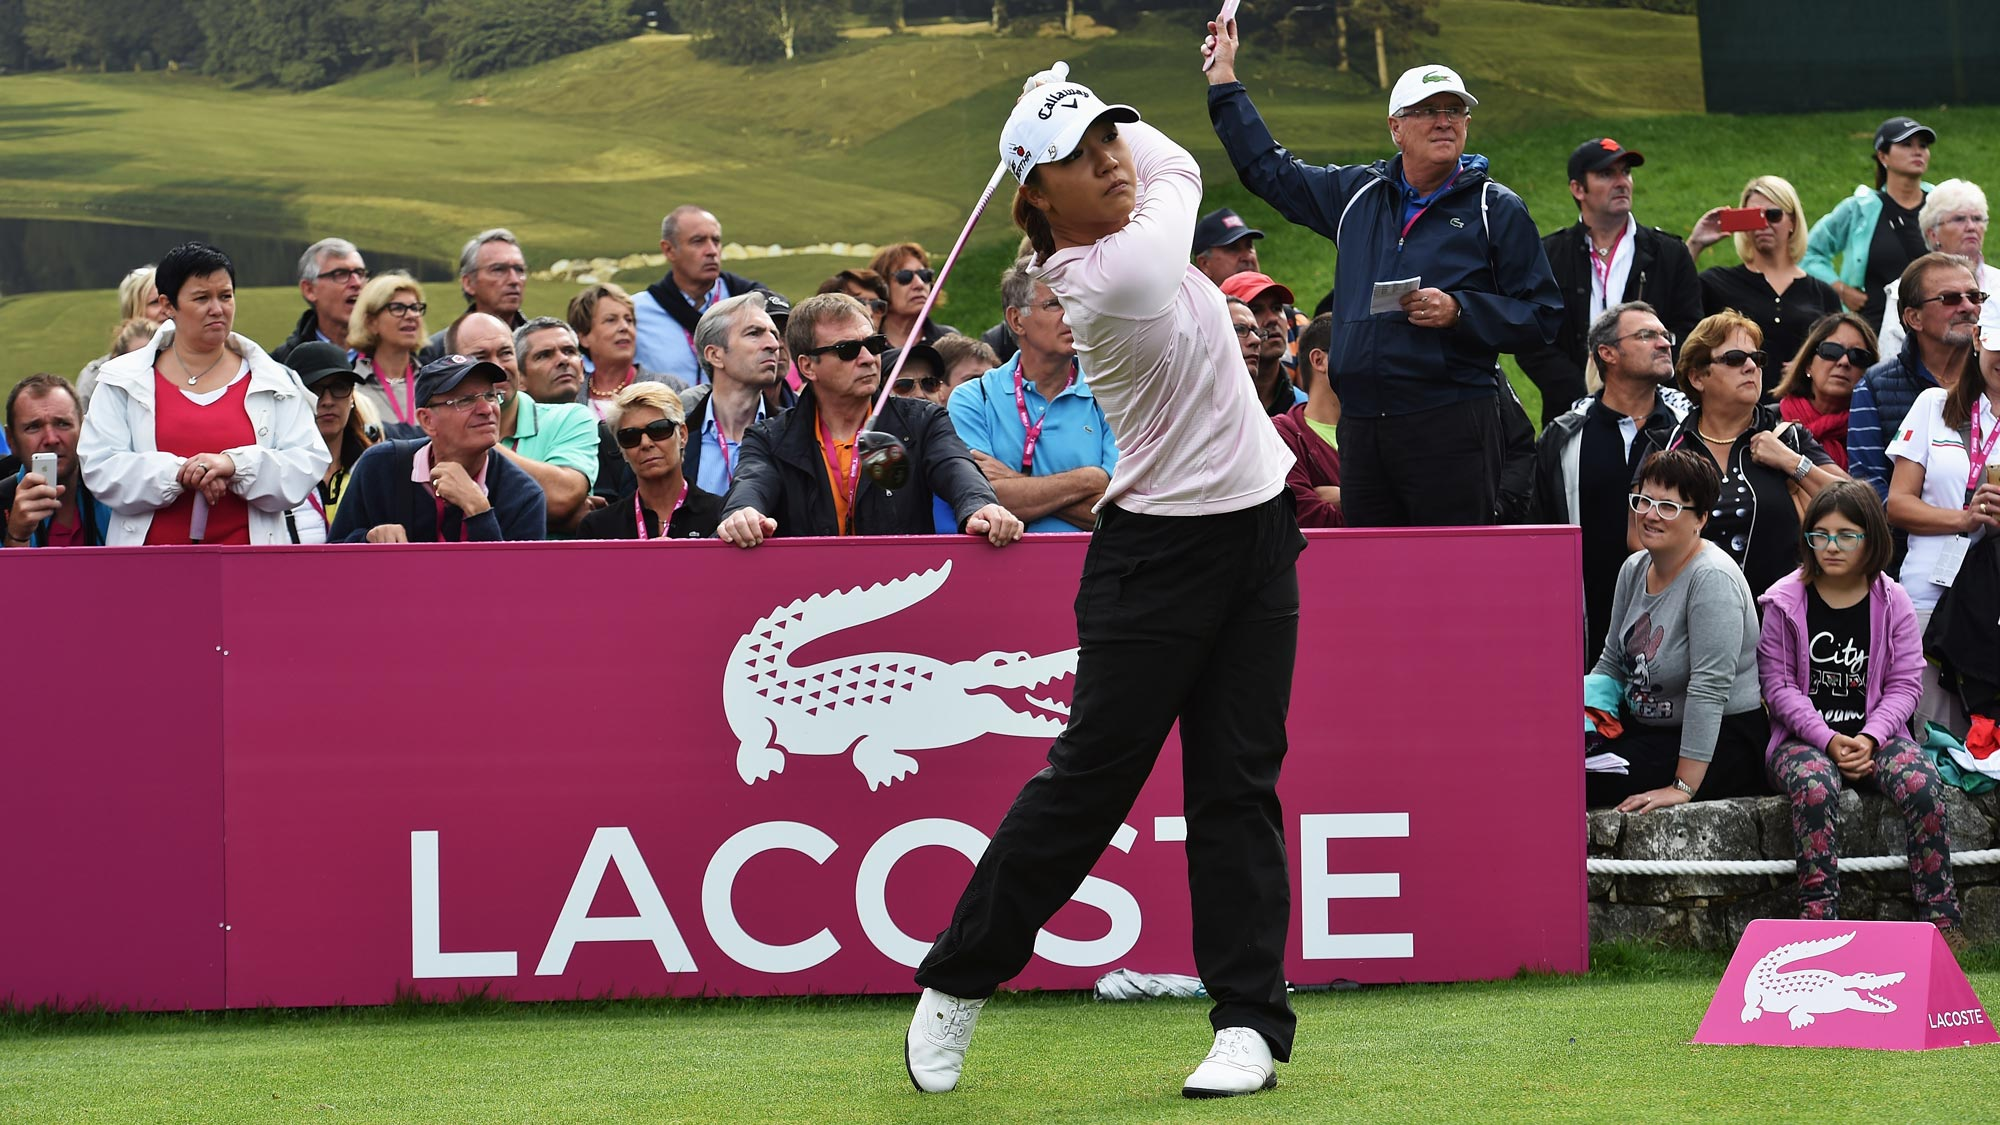 Lydia Ko during the final round of the Evian Championship